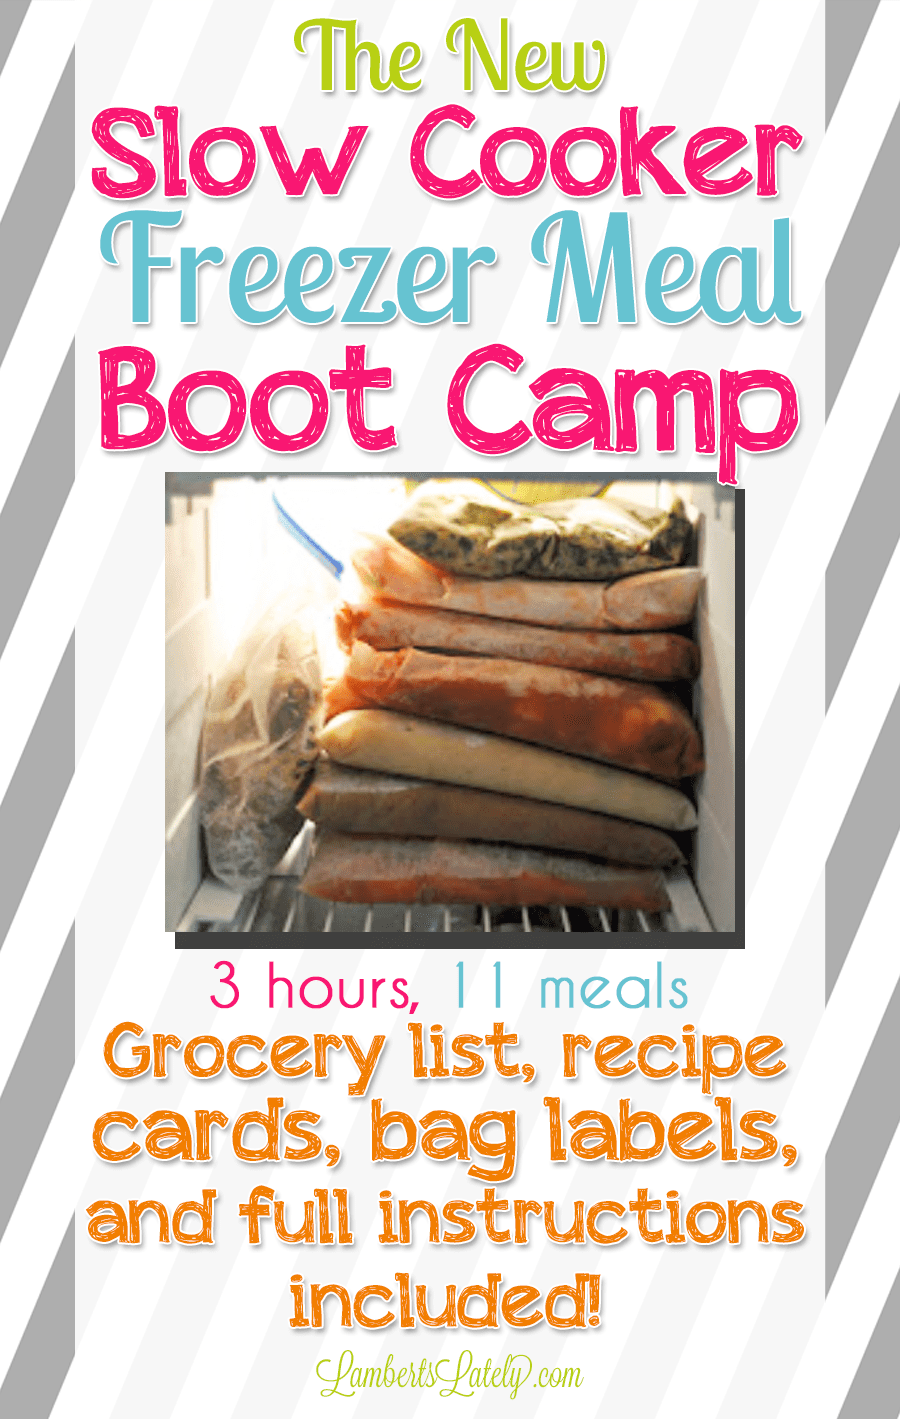 This post has 11 easy slow cooker freezer meals!  You can prep these recipes in just a few hours.  Includes chicken, beef, and vegetarian recipes, as well as grocery list and label printables.  For use in a Crock Pot or other slow cooking machine.